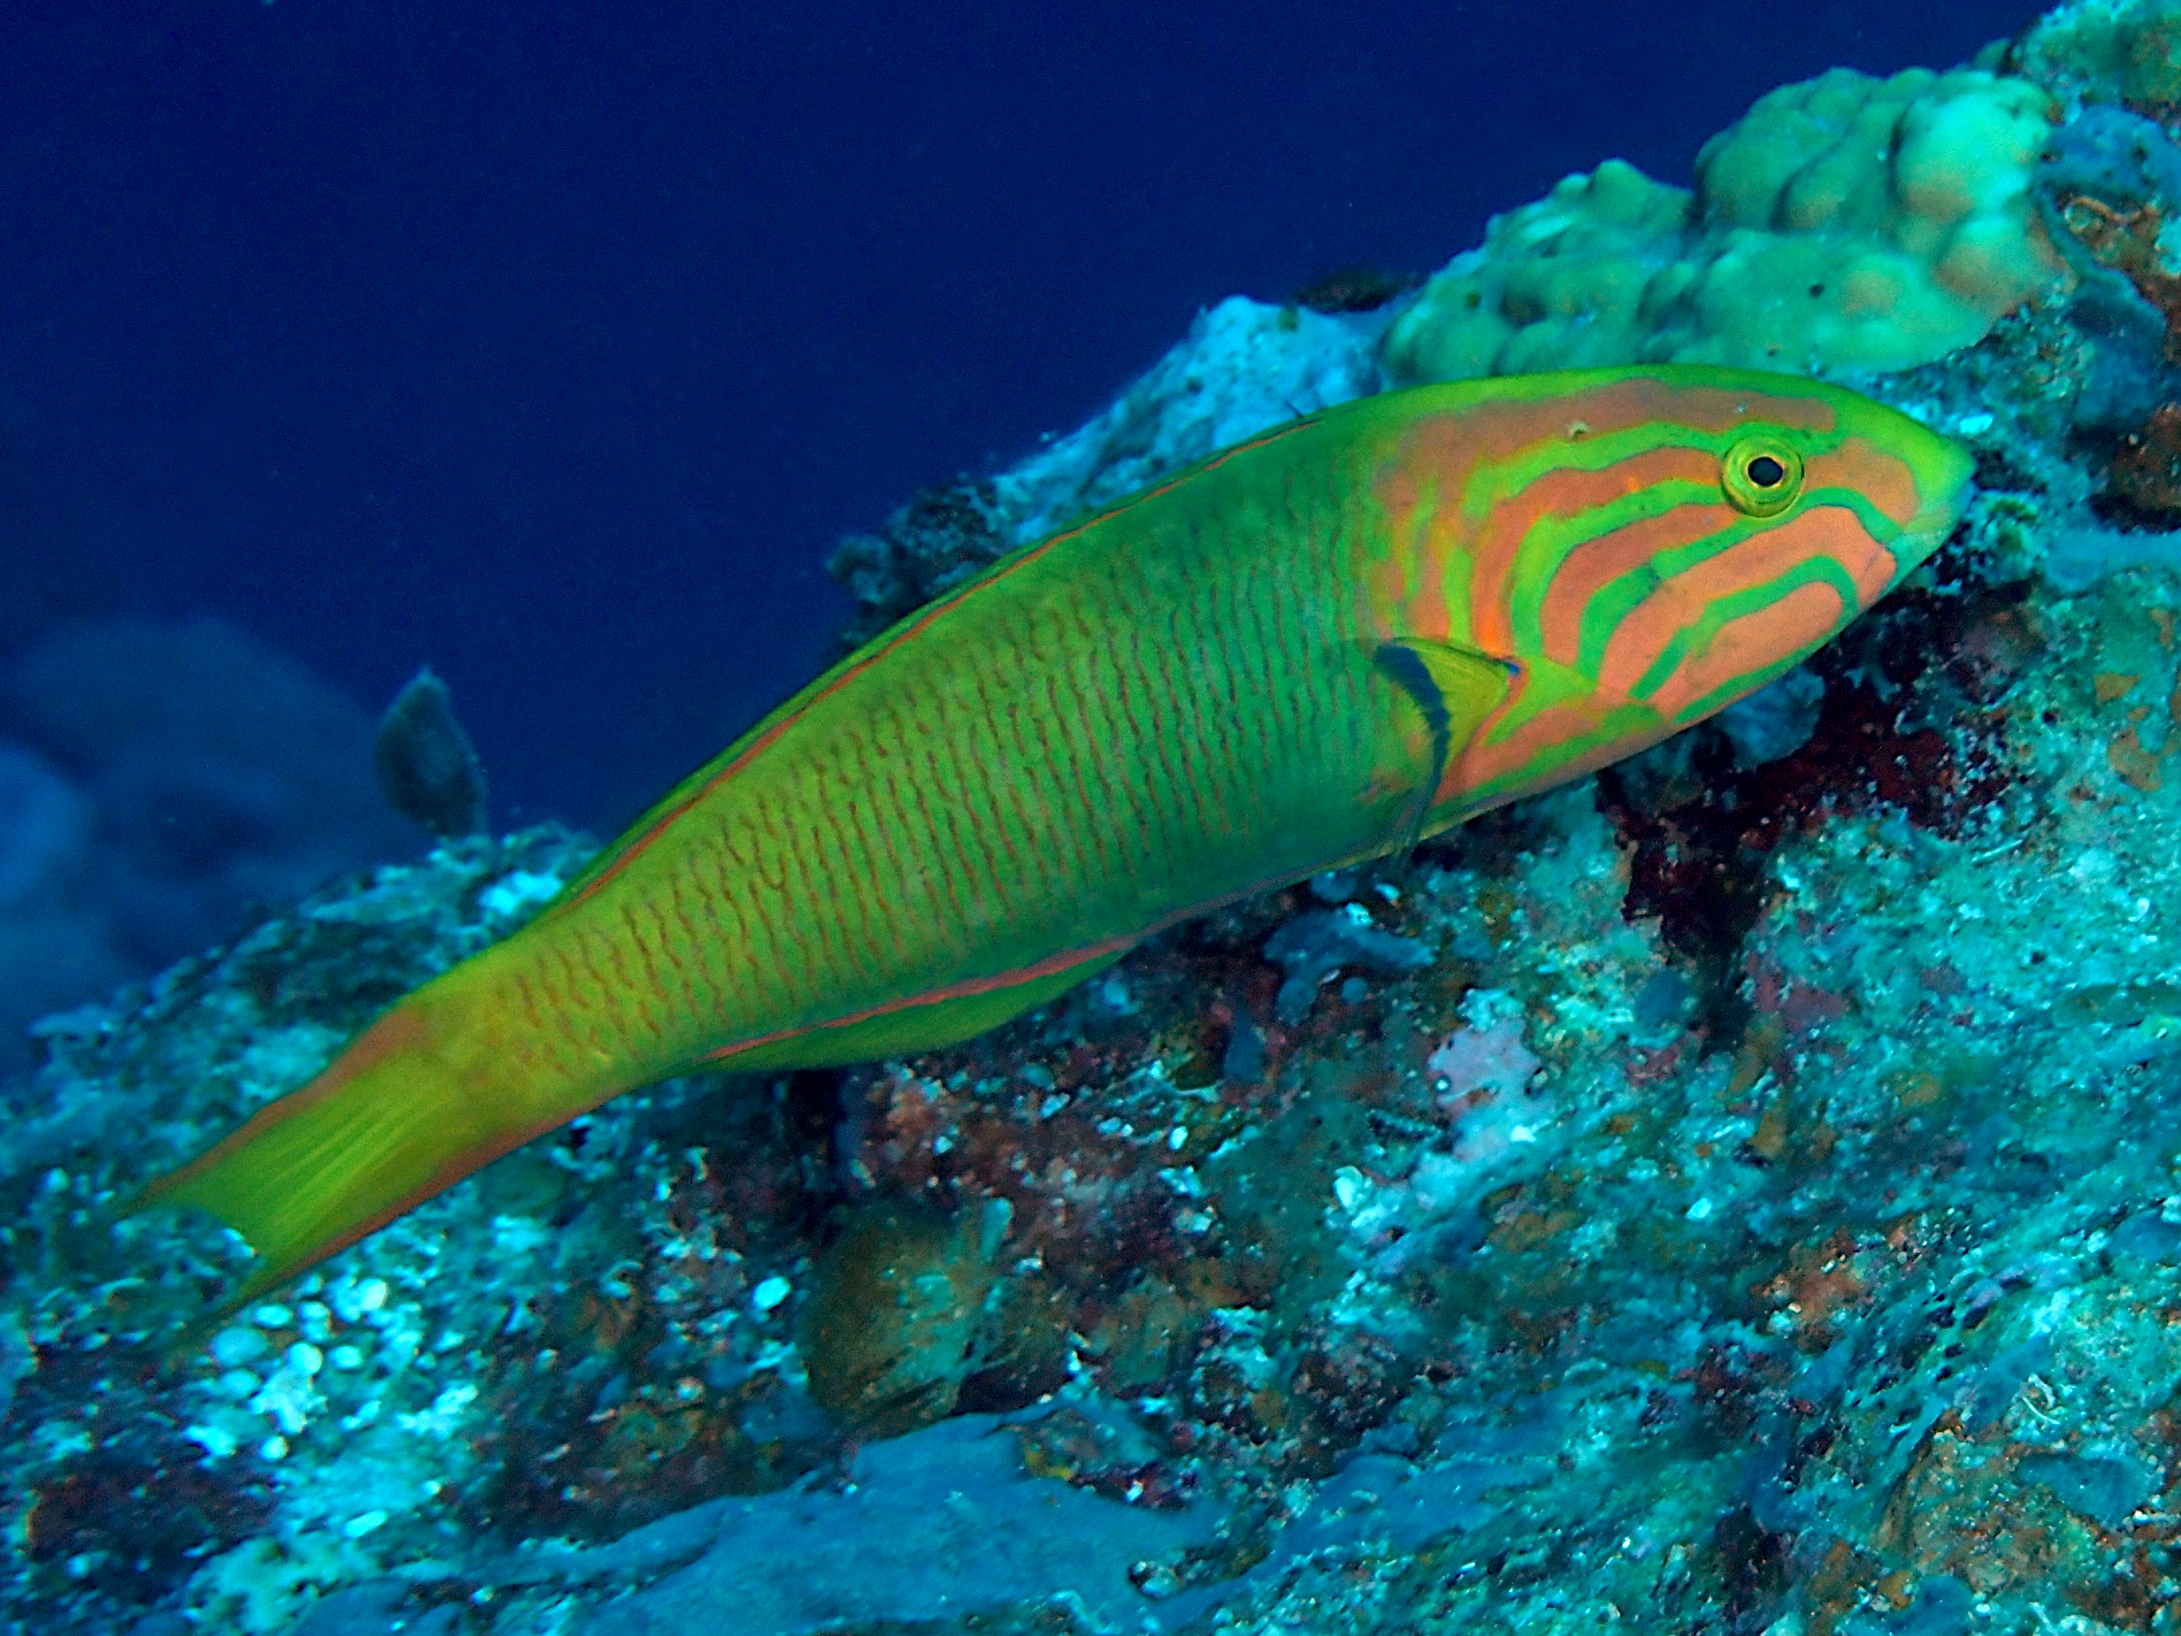 Yellow-Brown Wrasse - Thalassoma lutescens